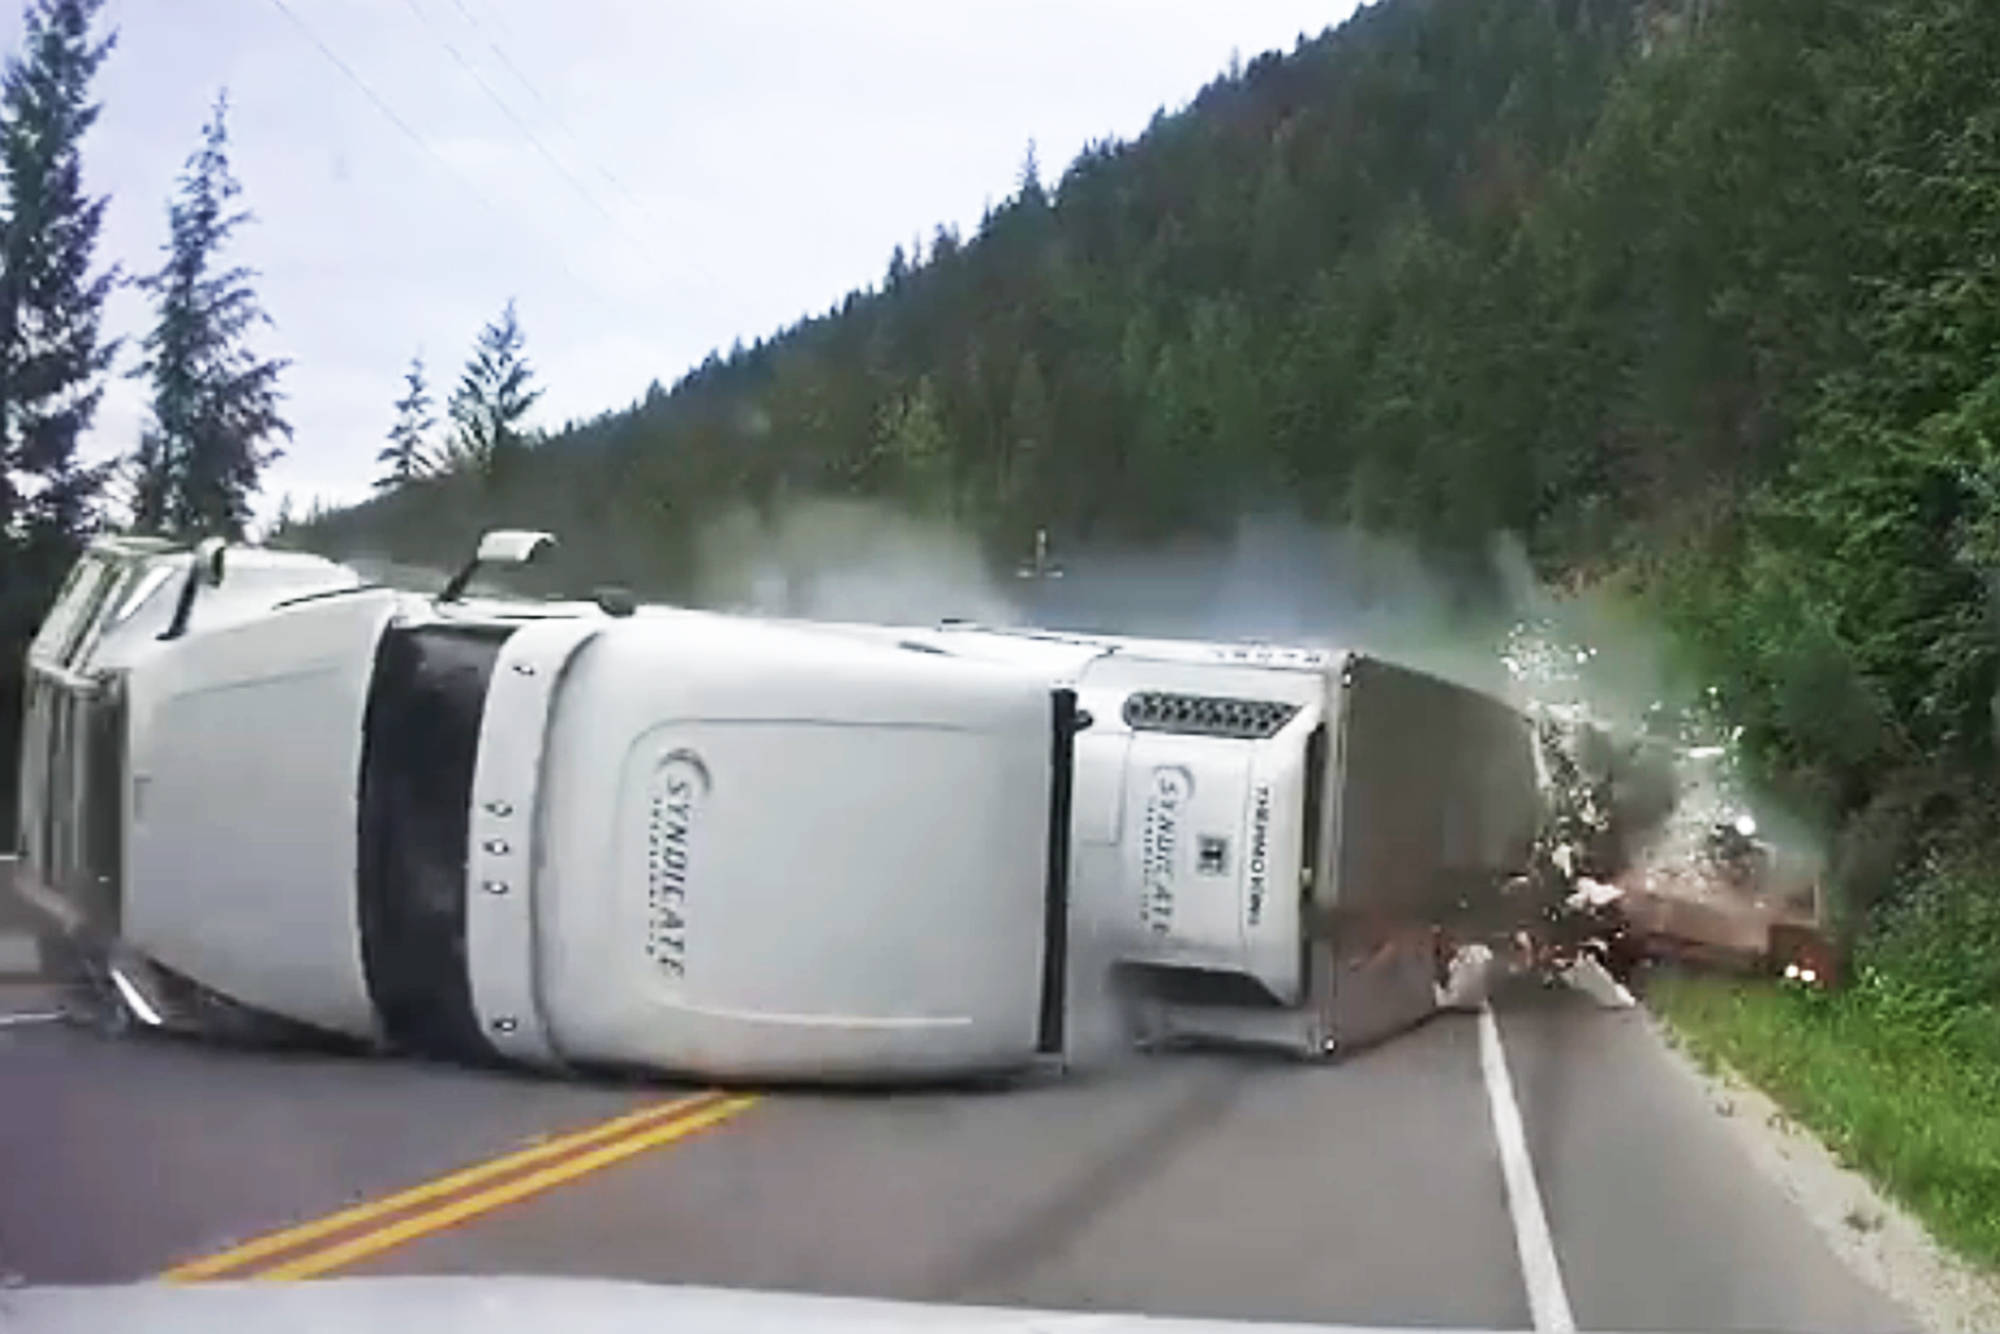 A still from Golden resident Chad Willox's dashcam footage shows a westbound semi and trailer colliding with a pickup truck before his own vehicle hit the trailer during a six-vehicle collision on Highway 1 west of Sicamous on Wednesday, July 15, 2020. (Chad Willox-Facebook image)